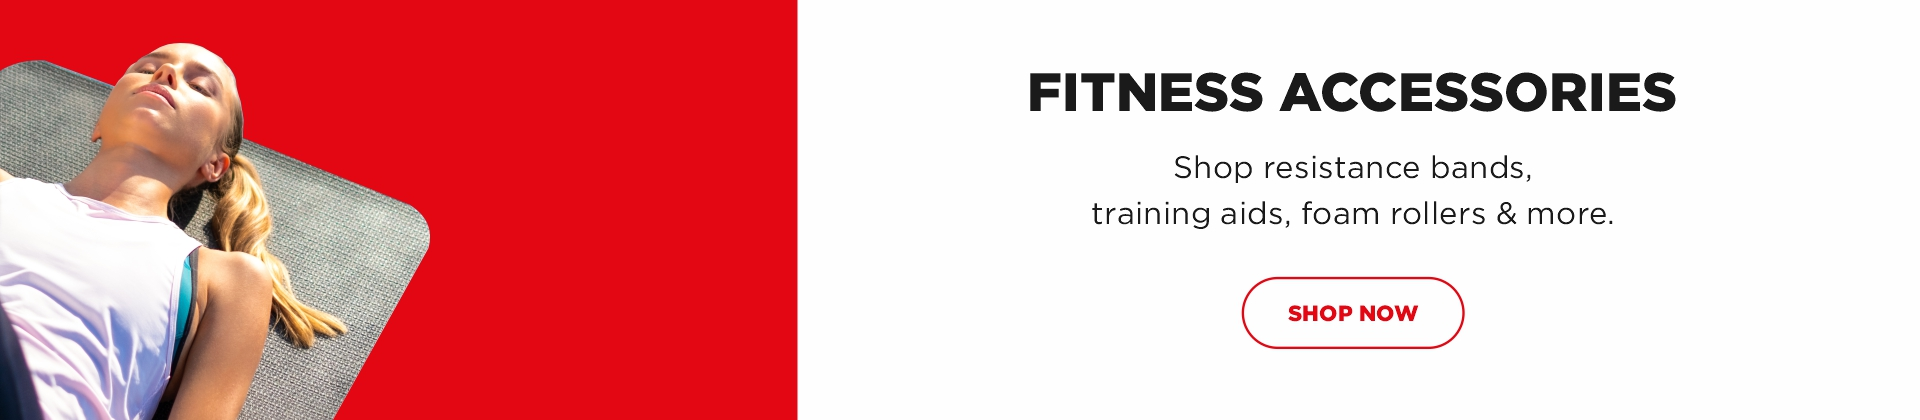 Elverys_2020_Training_Campaign_Fitness_Accessories_Banner_1920x420.jpg